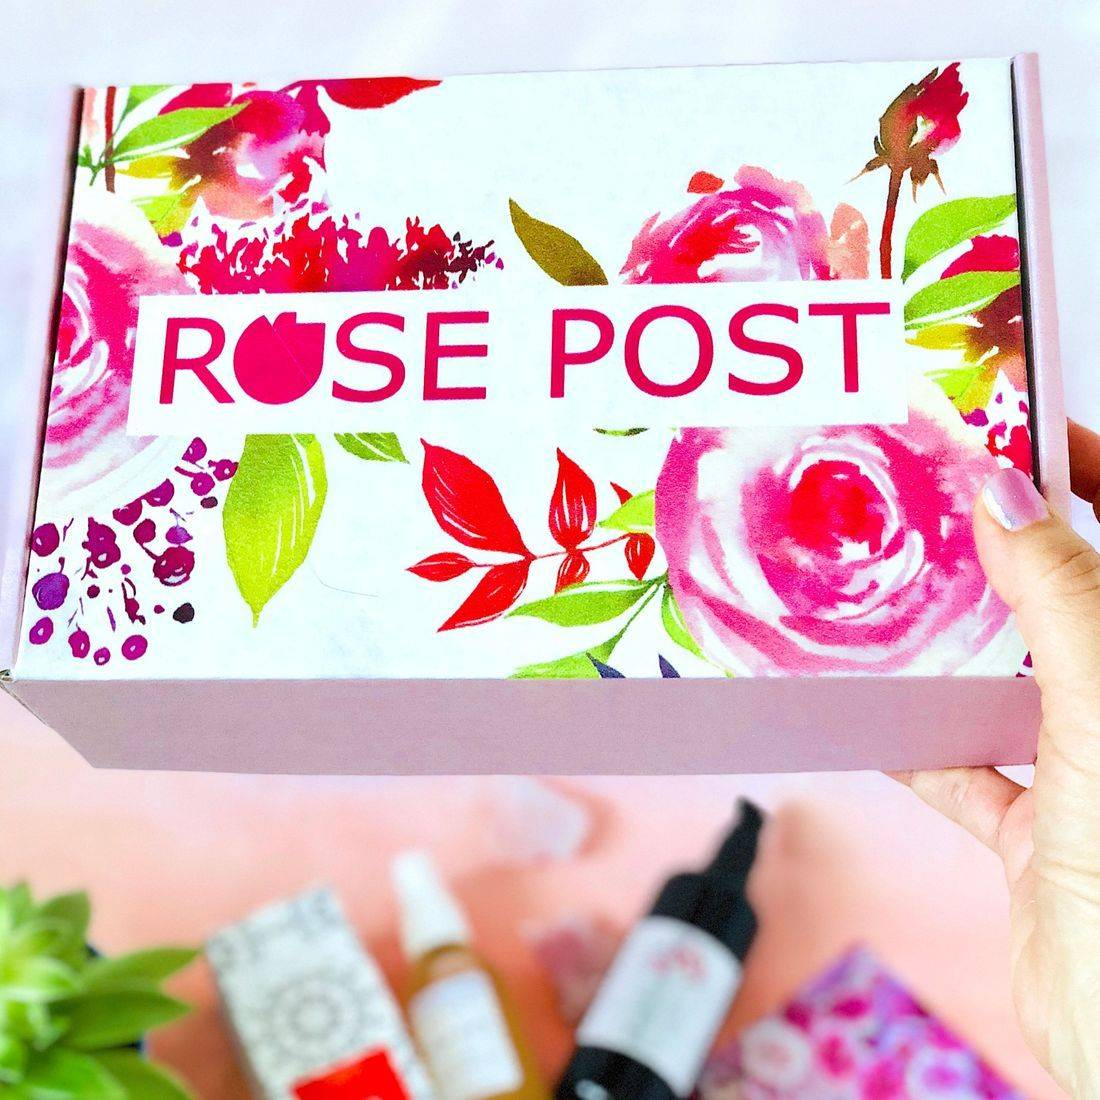 Our Limited Edition MOTHER'S DAY Box is available now! Order by 5/7 at midnight for guaranteed delivery, free shipping!